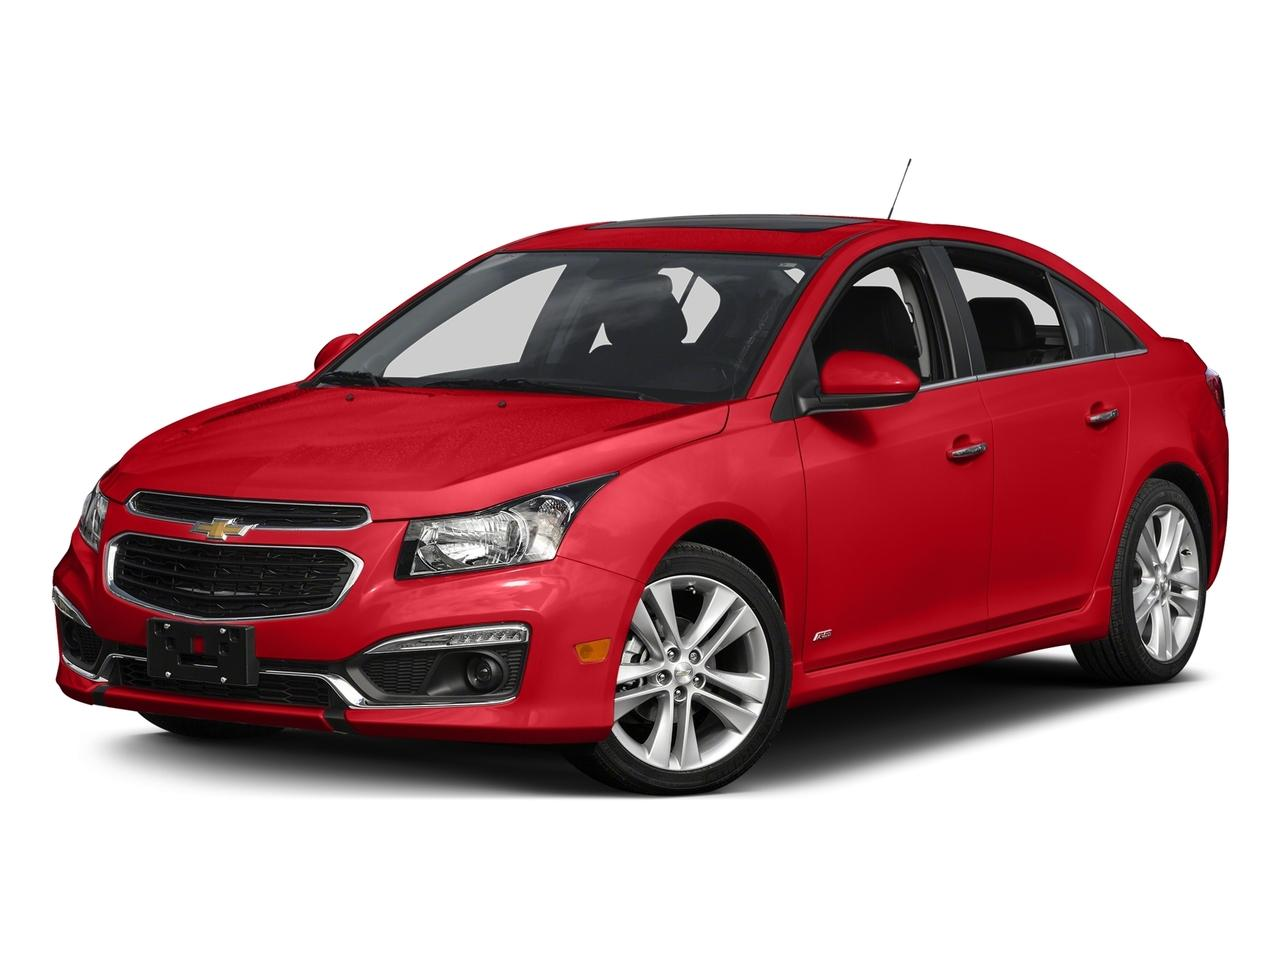 2015 Chevrolet Cruze Vehicle Photo in Brockton, MA 02301